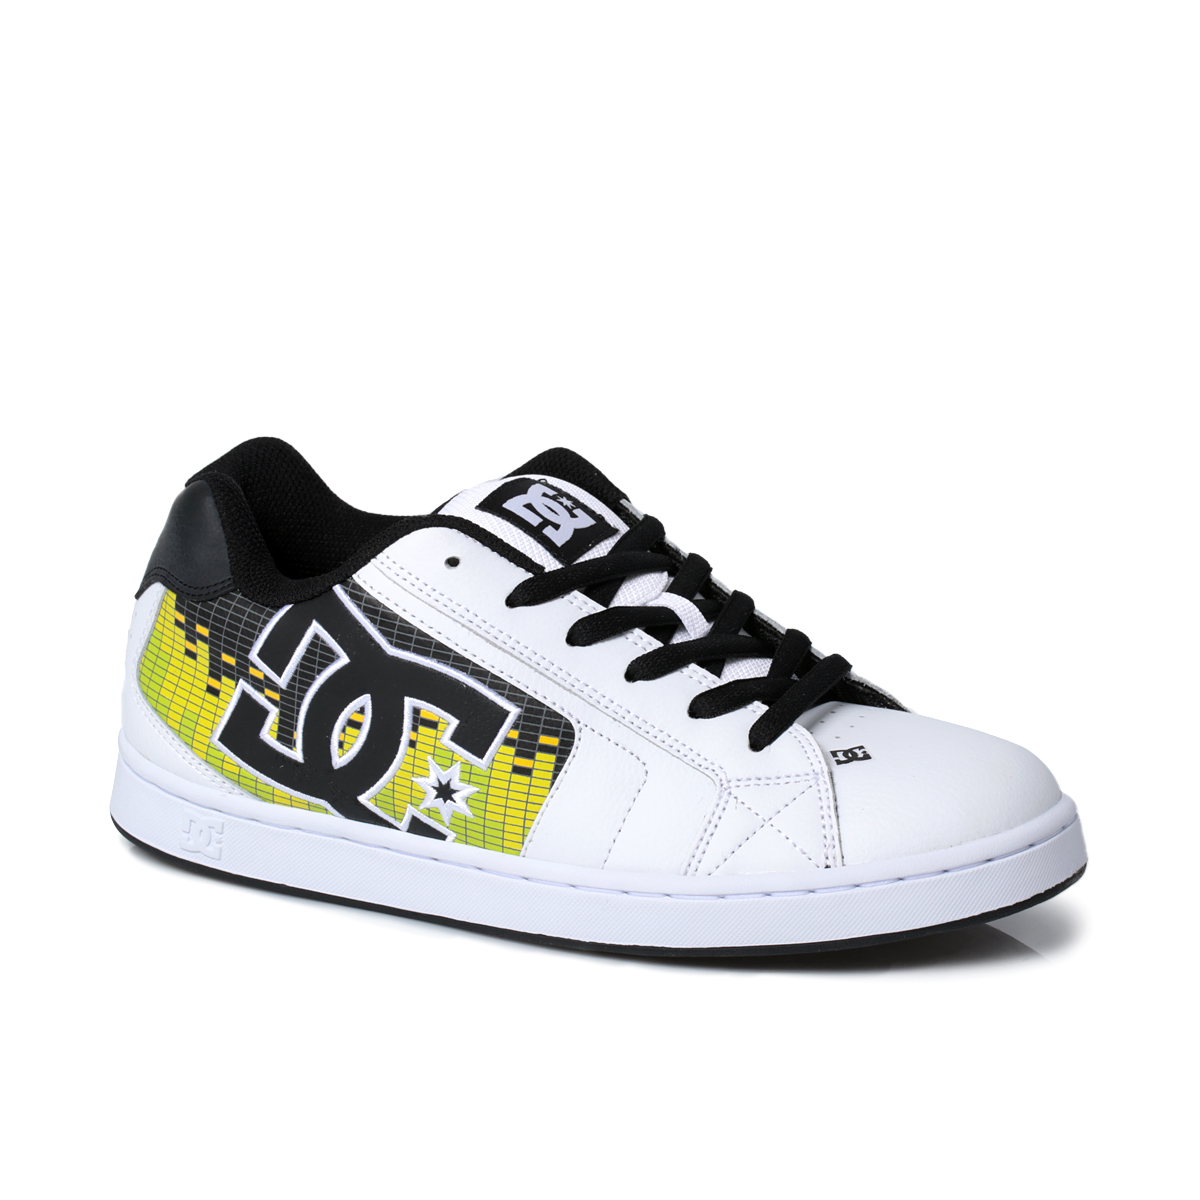 Free shipping BOTH ways on DC, Sneakers & Athletic Shoes, Men, from our vast selection of styles. Fast delivery, and 24/7/ real-person service with a smile. Click or call